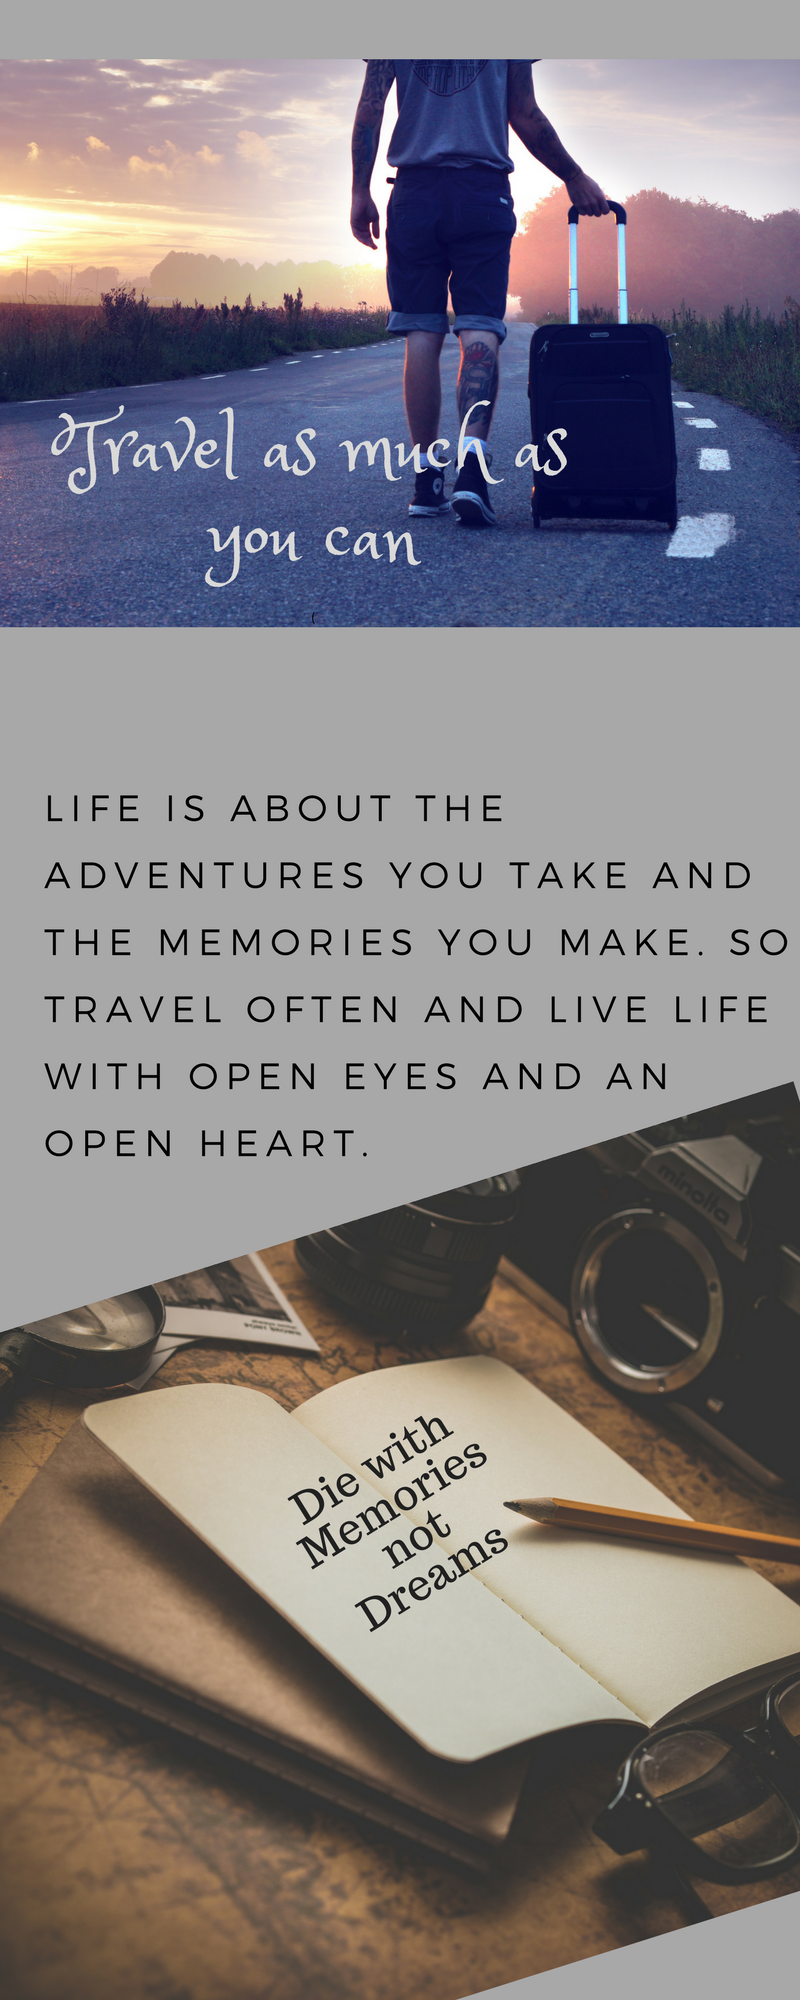 Pin by Katey on travel Tour packages, Travel, Holiday